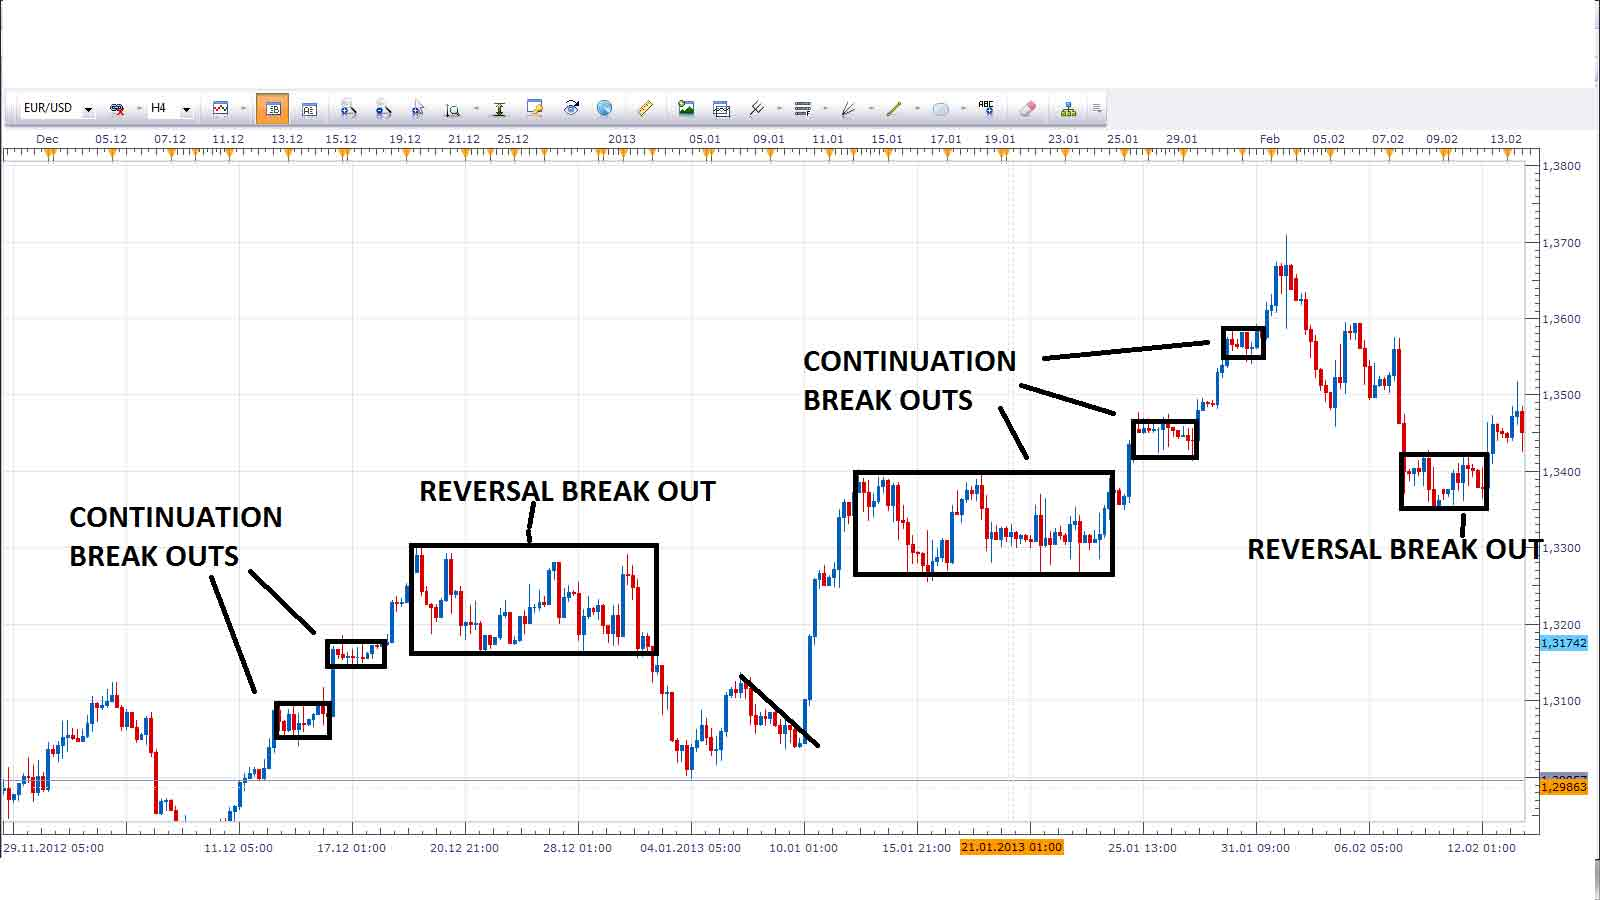 forex-continuation-break-outs.jpg